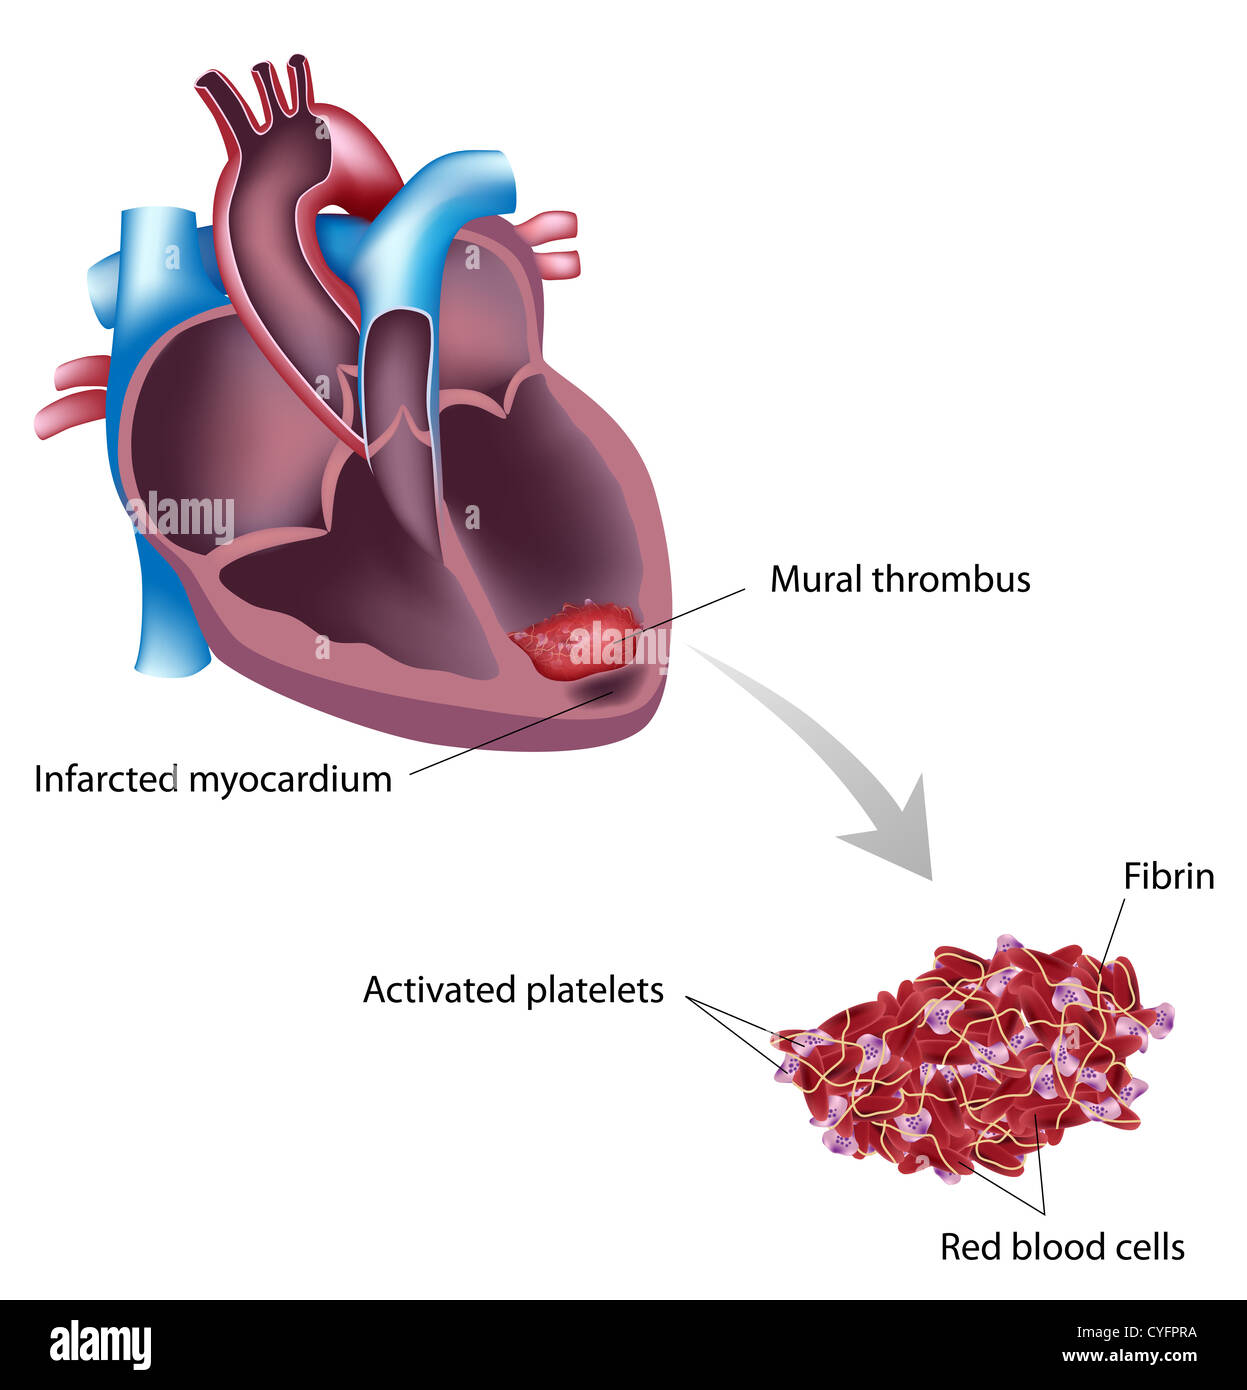 Mural thrombus of heart